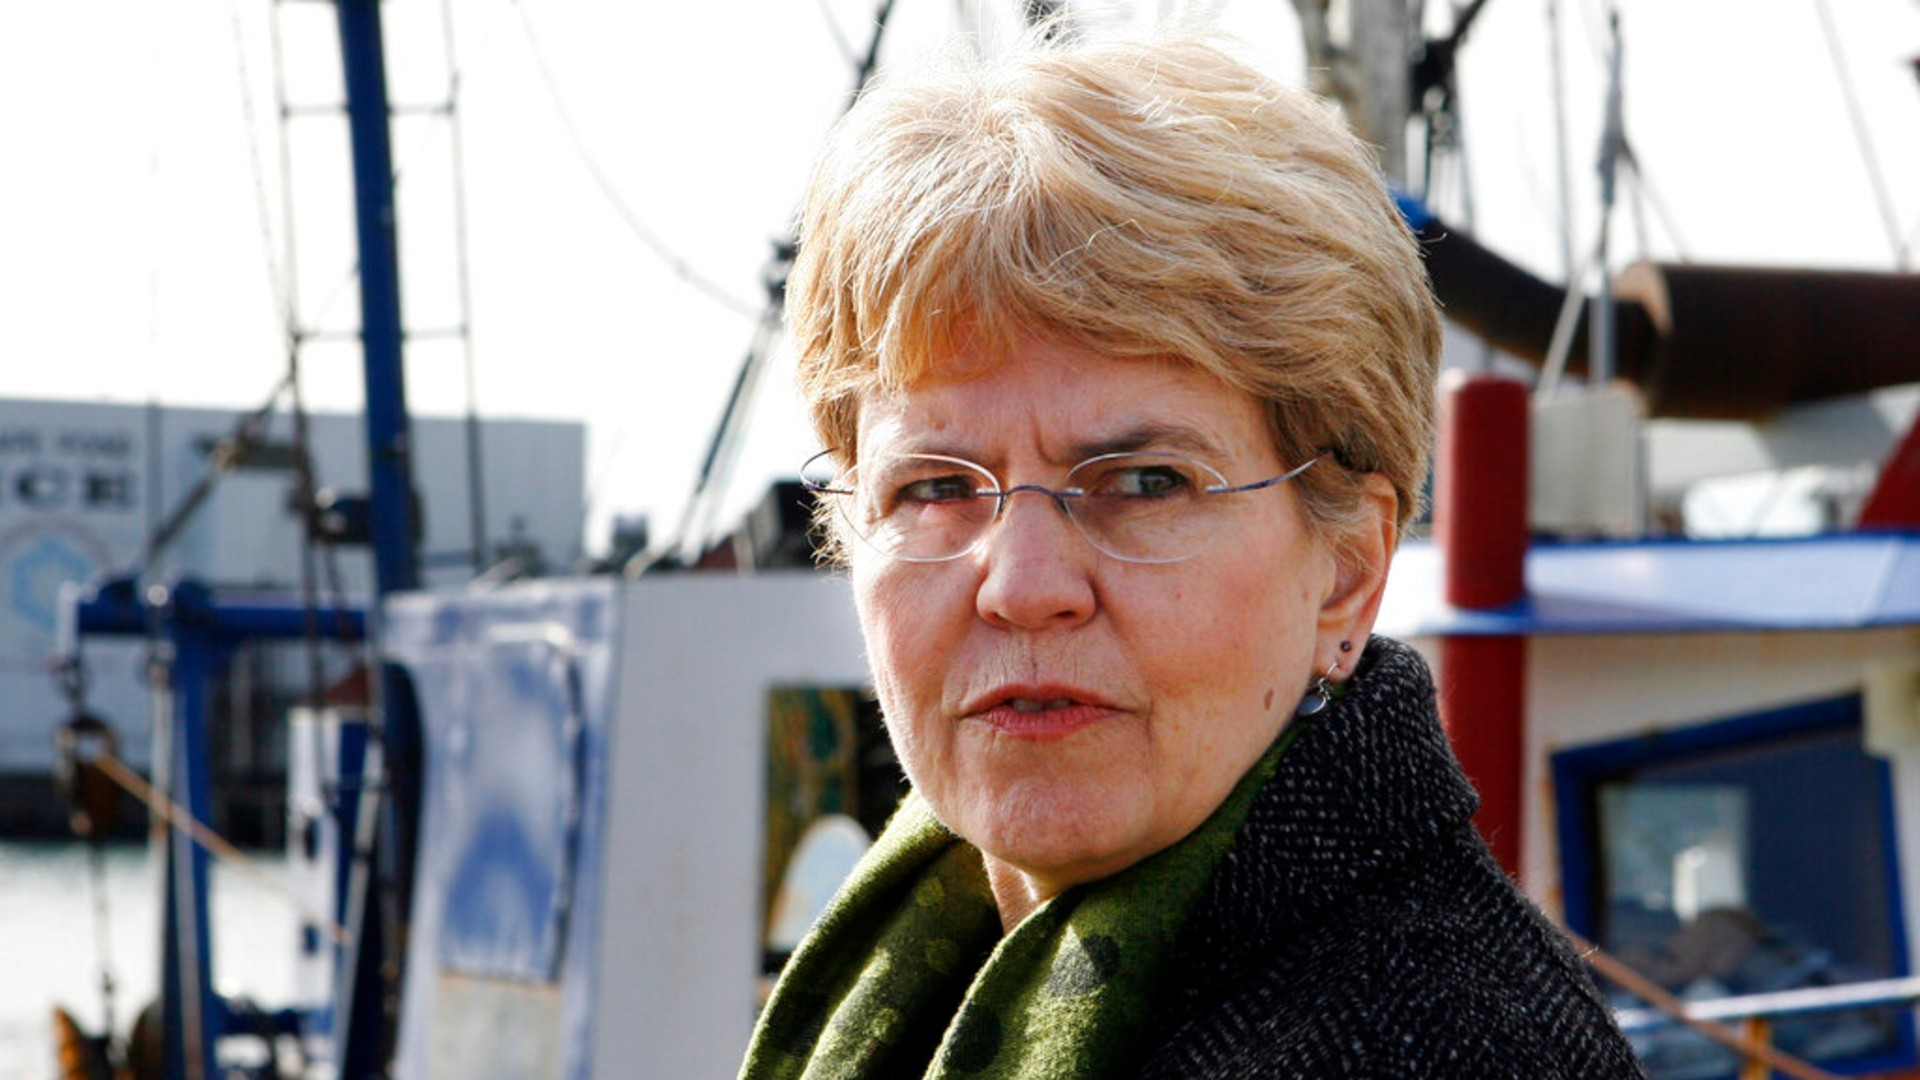 In this March 2, 2010, file photo, National Oceanic and Atmospheric Administration, NOAA, chief, Jane Lubchenco looks out from the waterfront as she speaks to fisherman in Gloucester, Mass. (AP Photo/Mary Schwalm, File)